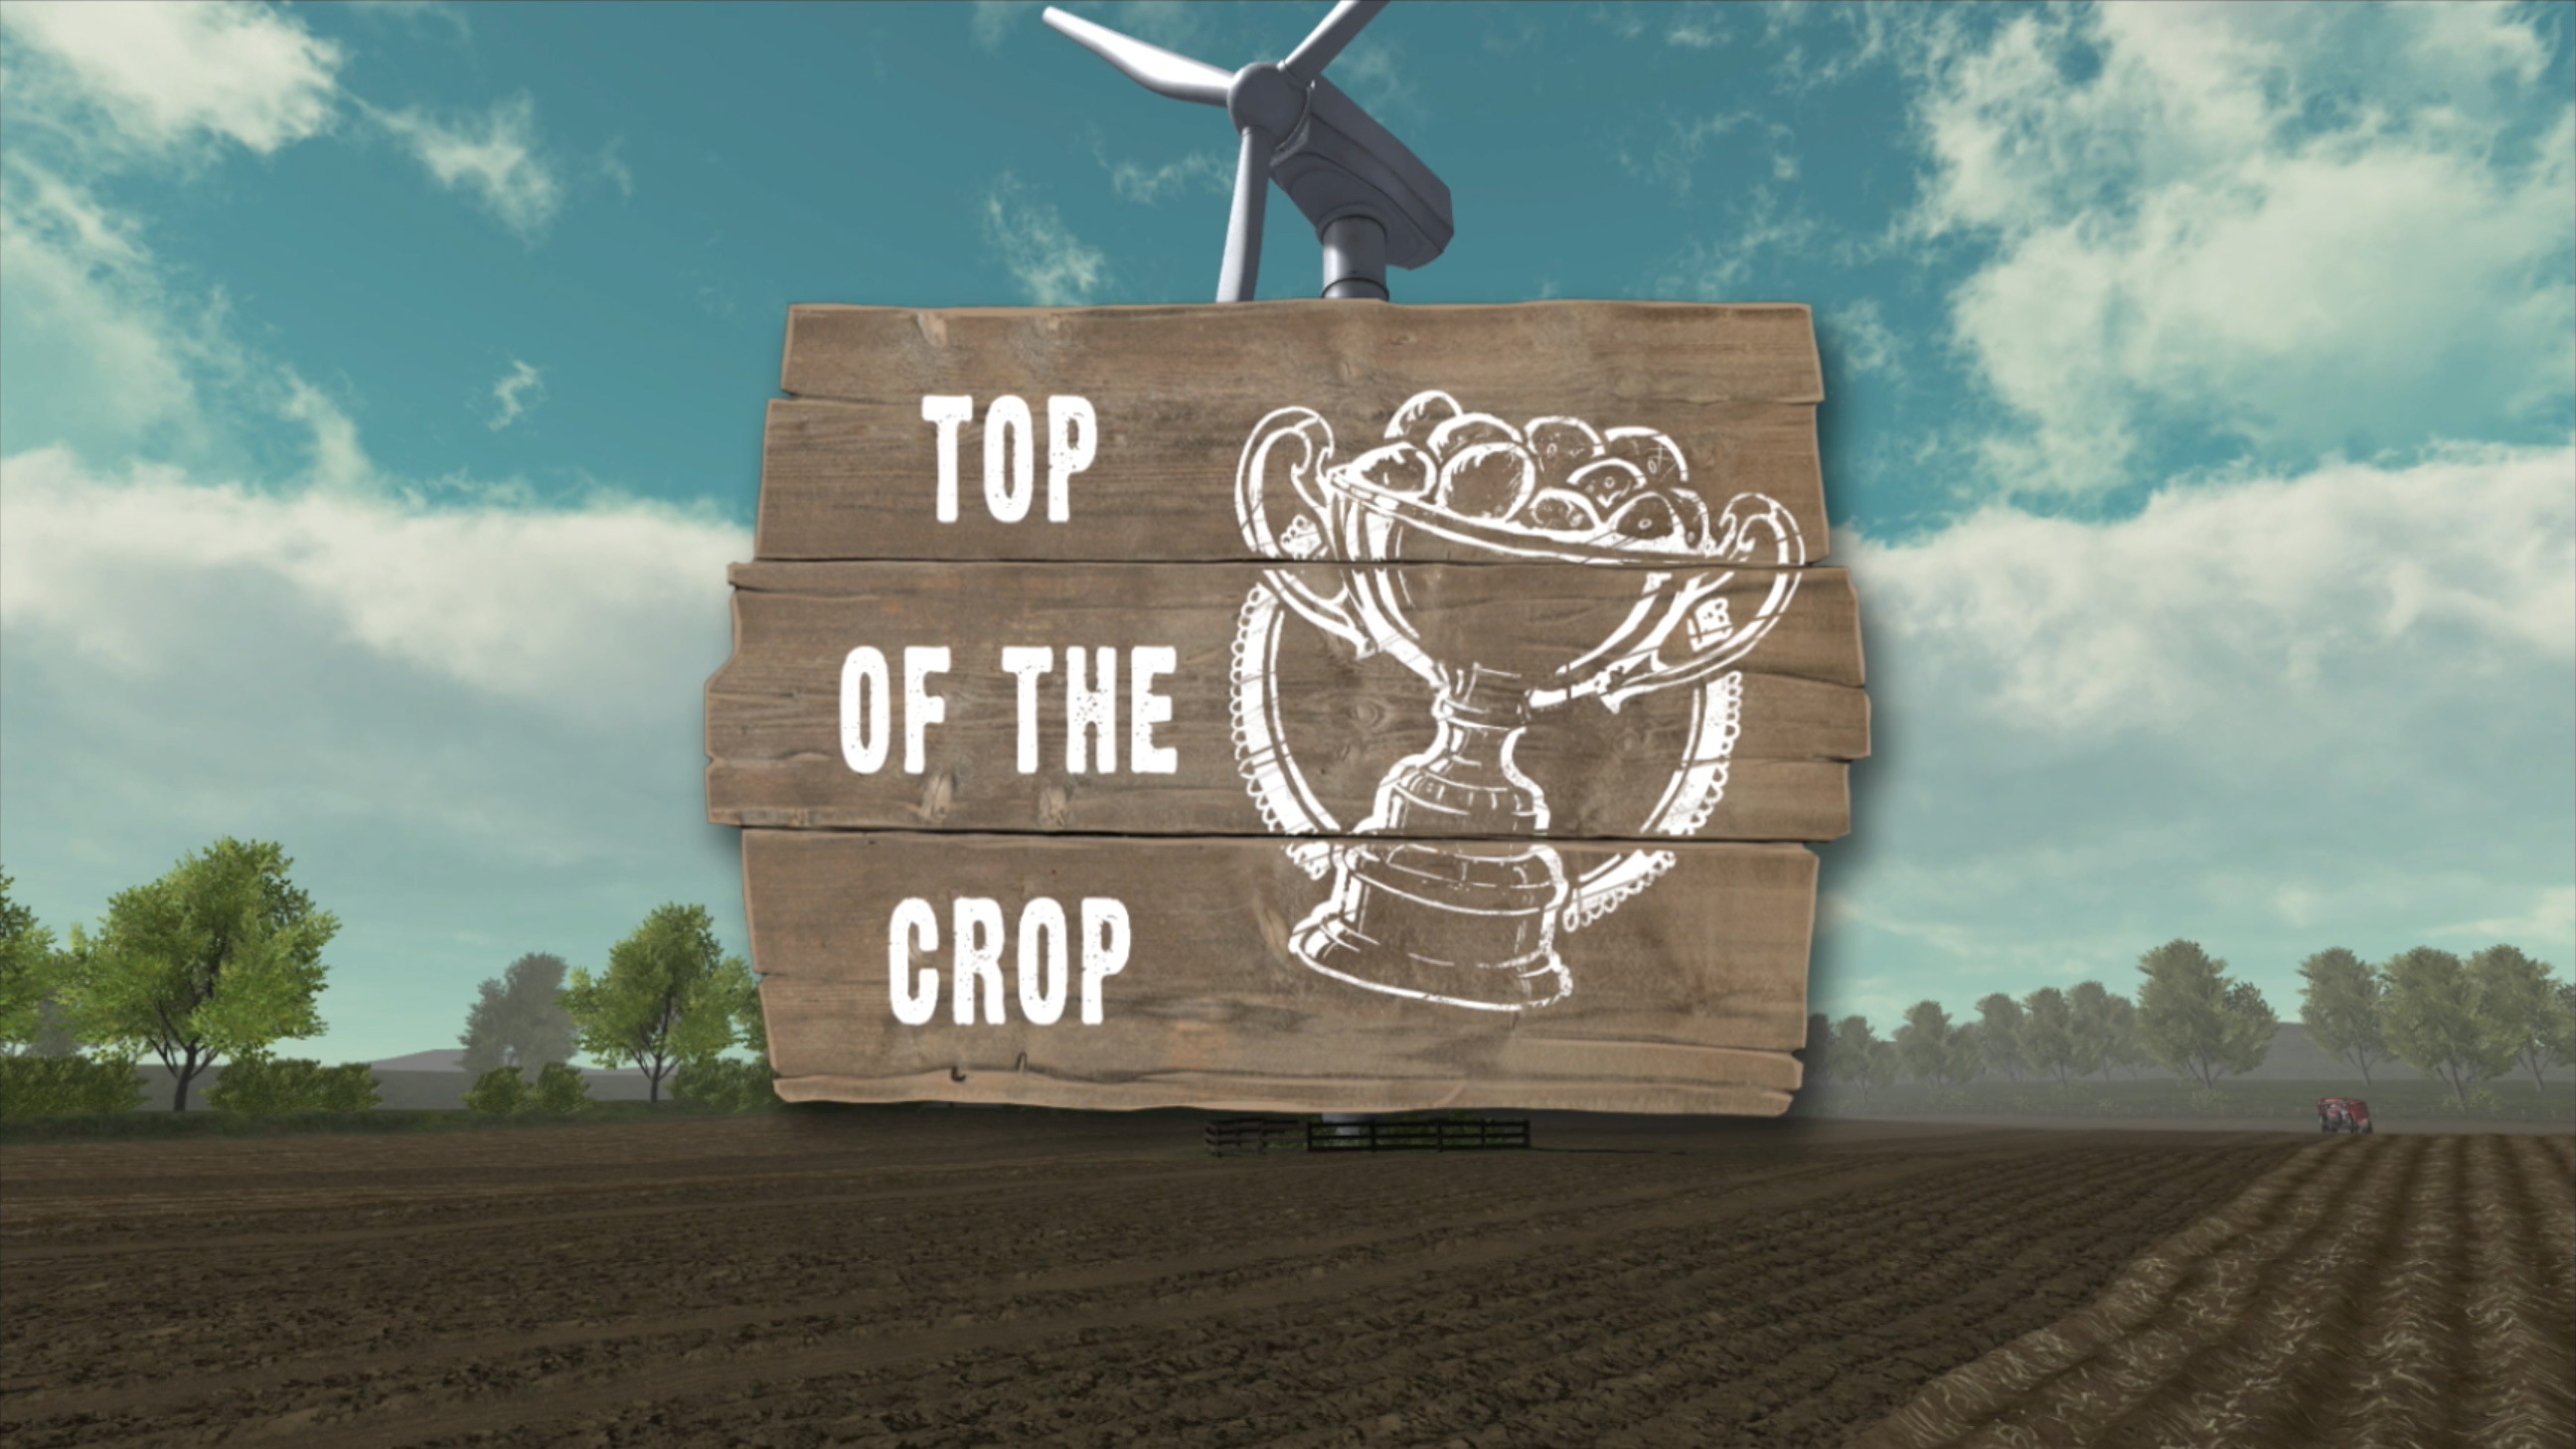 madewithunity - Top of the Crop